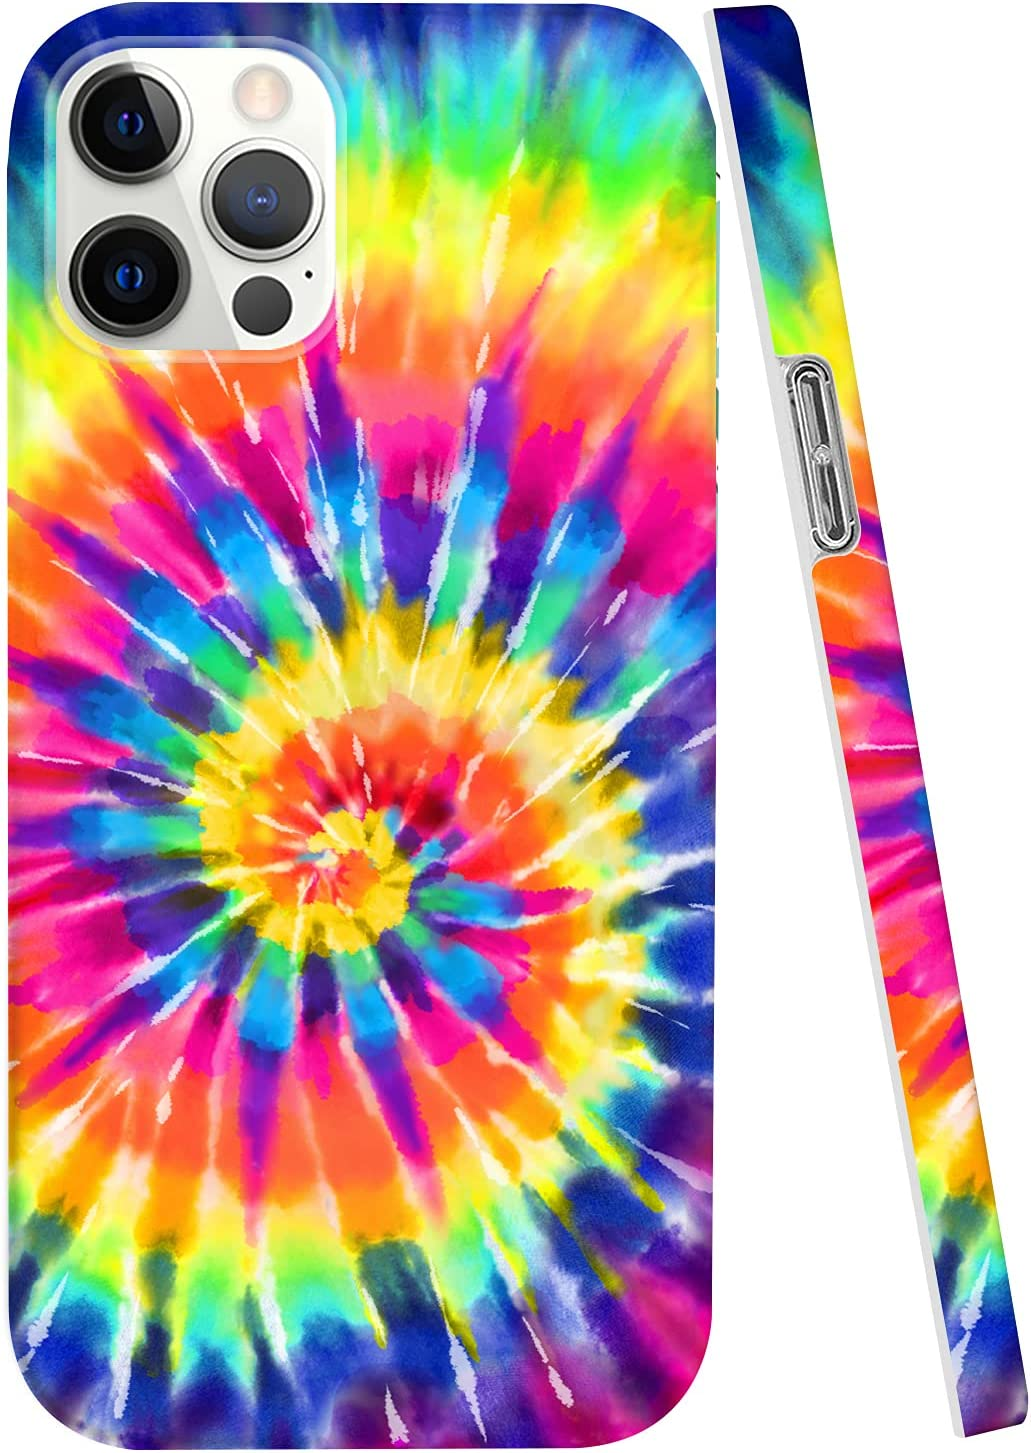 Hepix Rainbow Compatible with iPhone 12 Pro Max Case Tie Dye iPhone 12 Pro Max Case 6.7 Inch 2020,Graphics Abstract Colorful Phone Case Anti-Yellow, Shockproof Protective Cover for iPhone 12 Pro Max